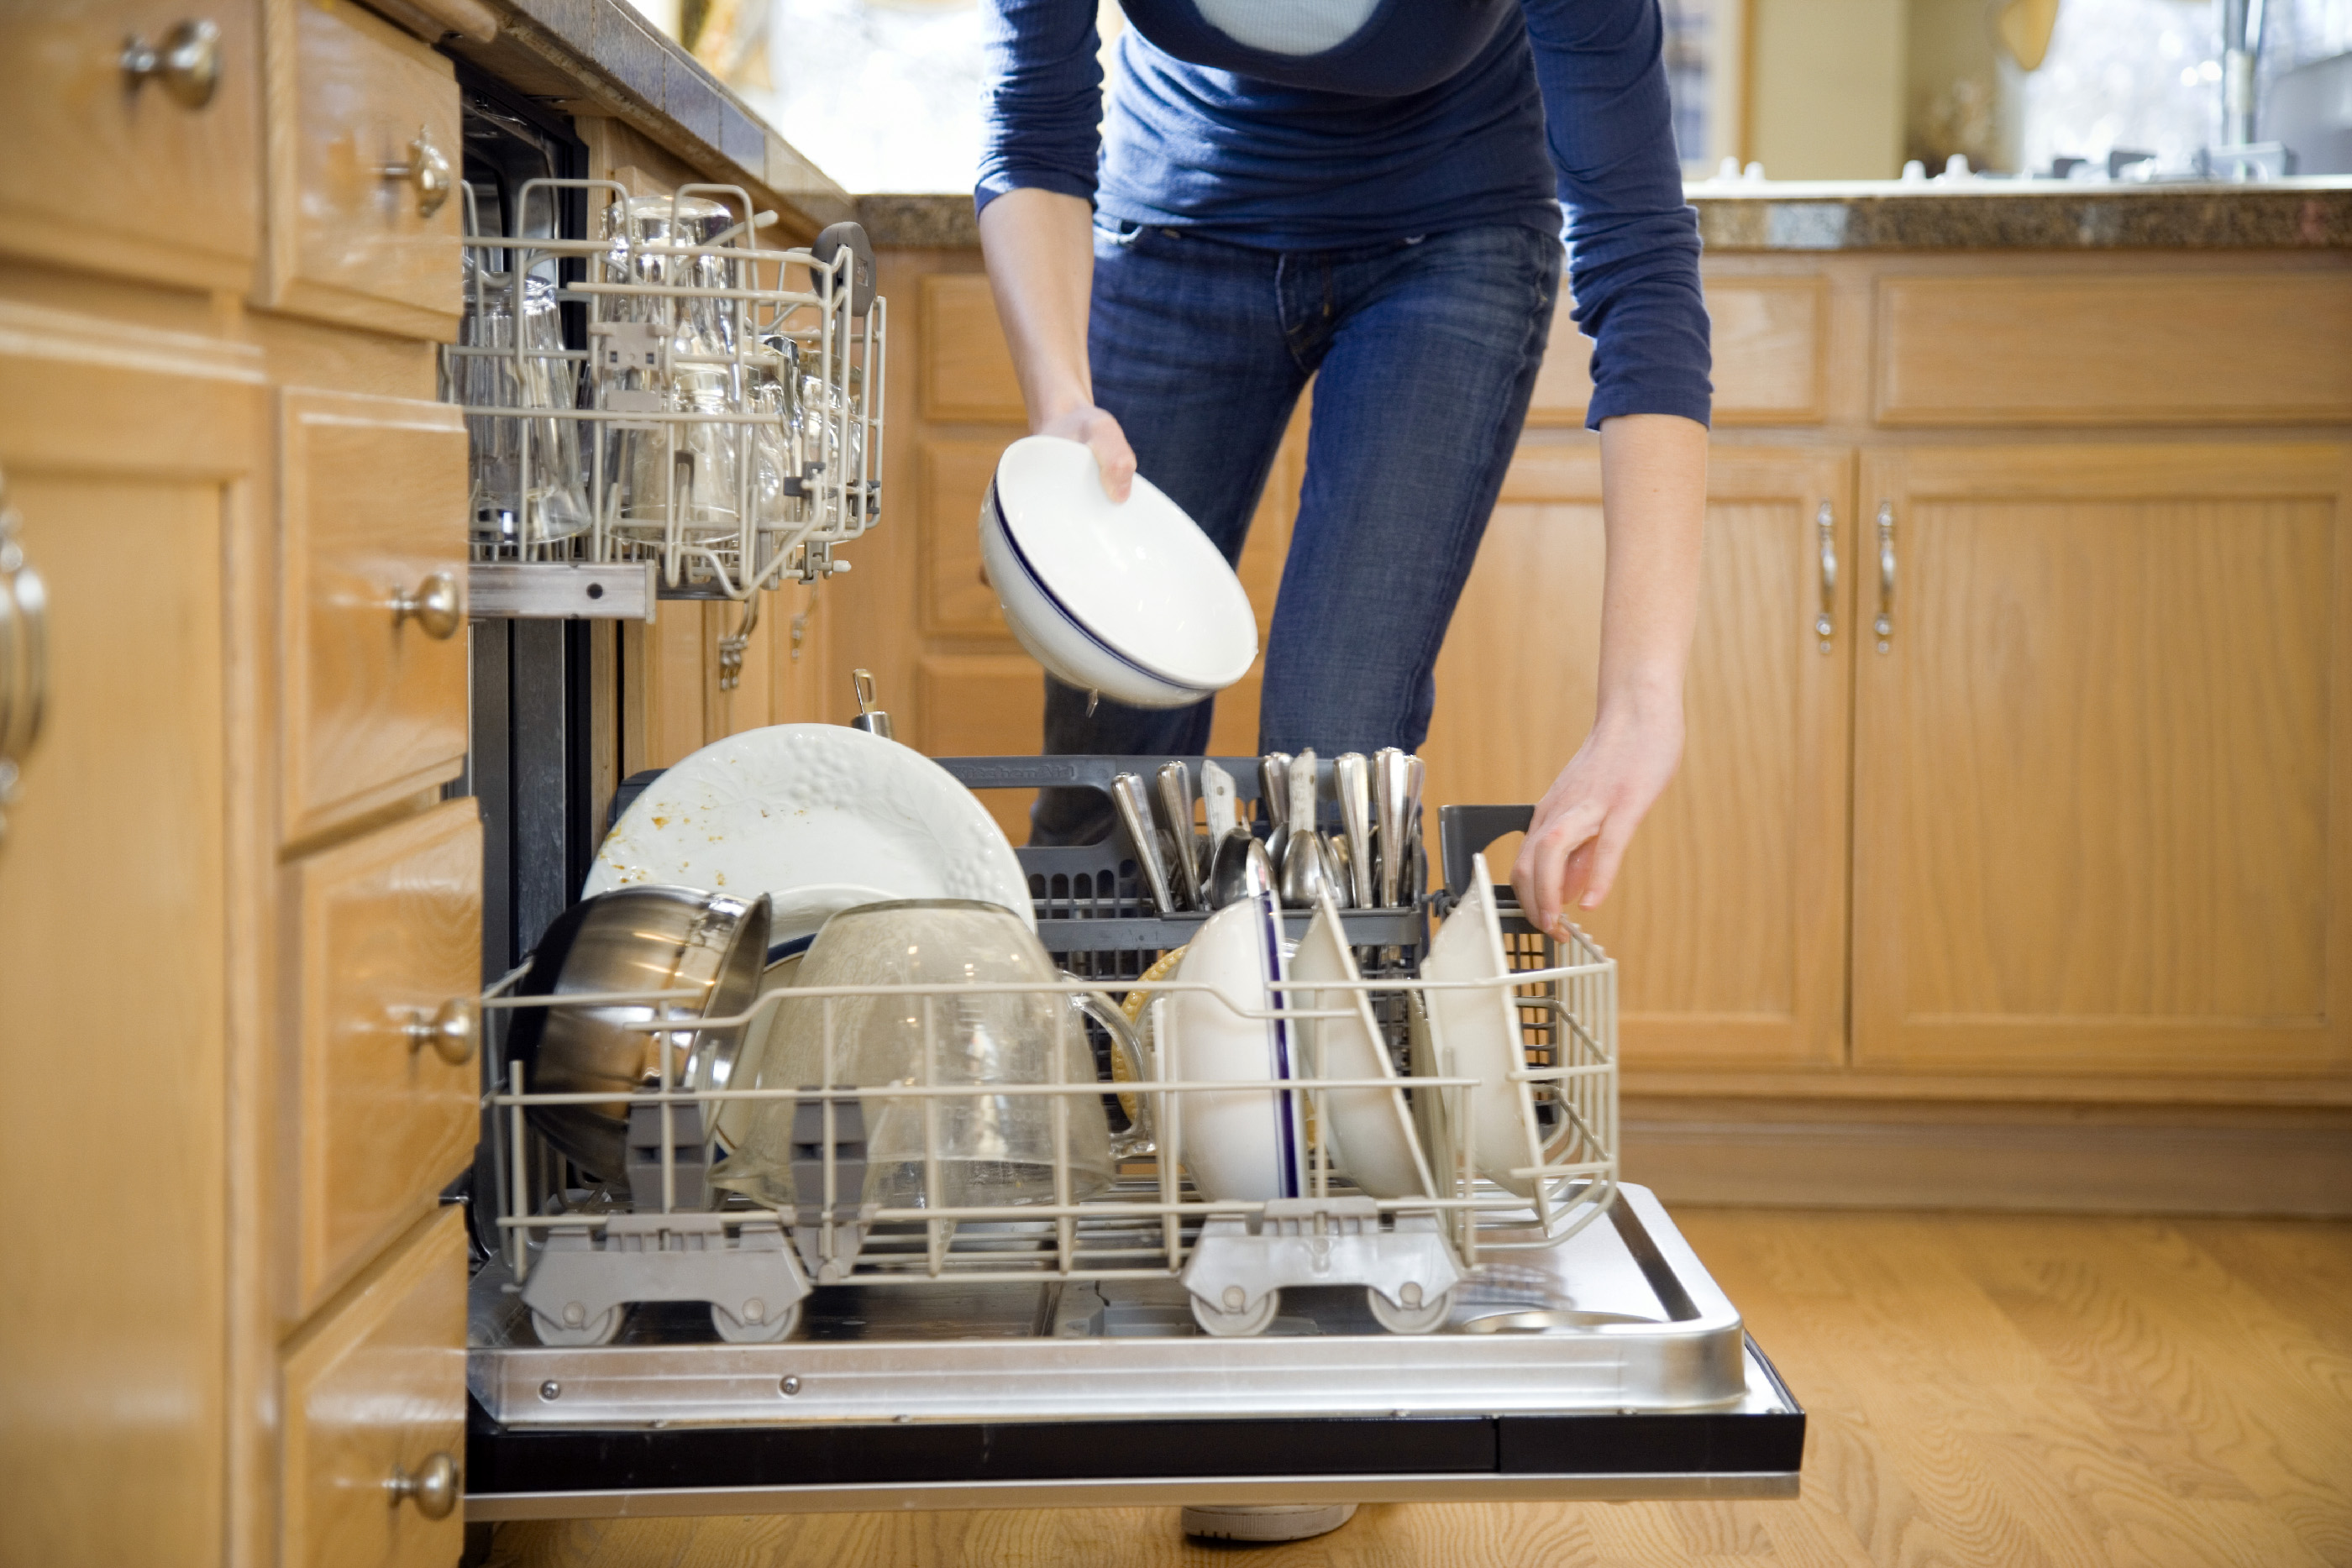 Teenage girl (16-18) putting dishes in dishwasher, low section